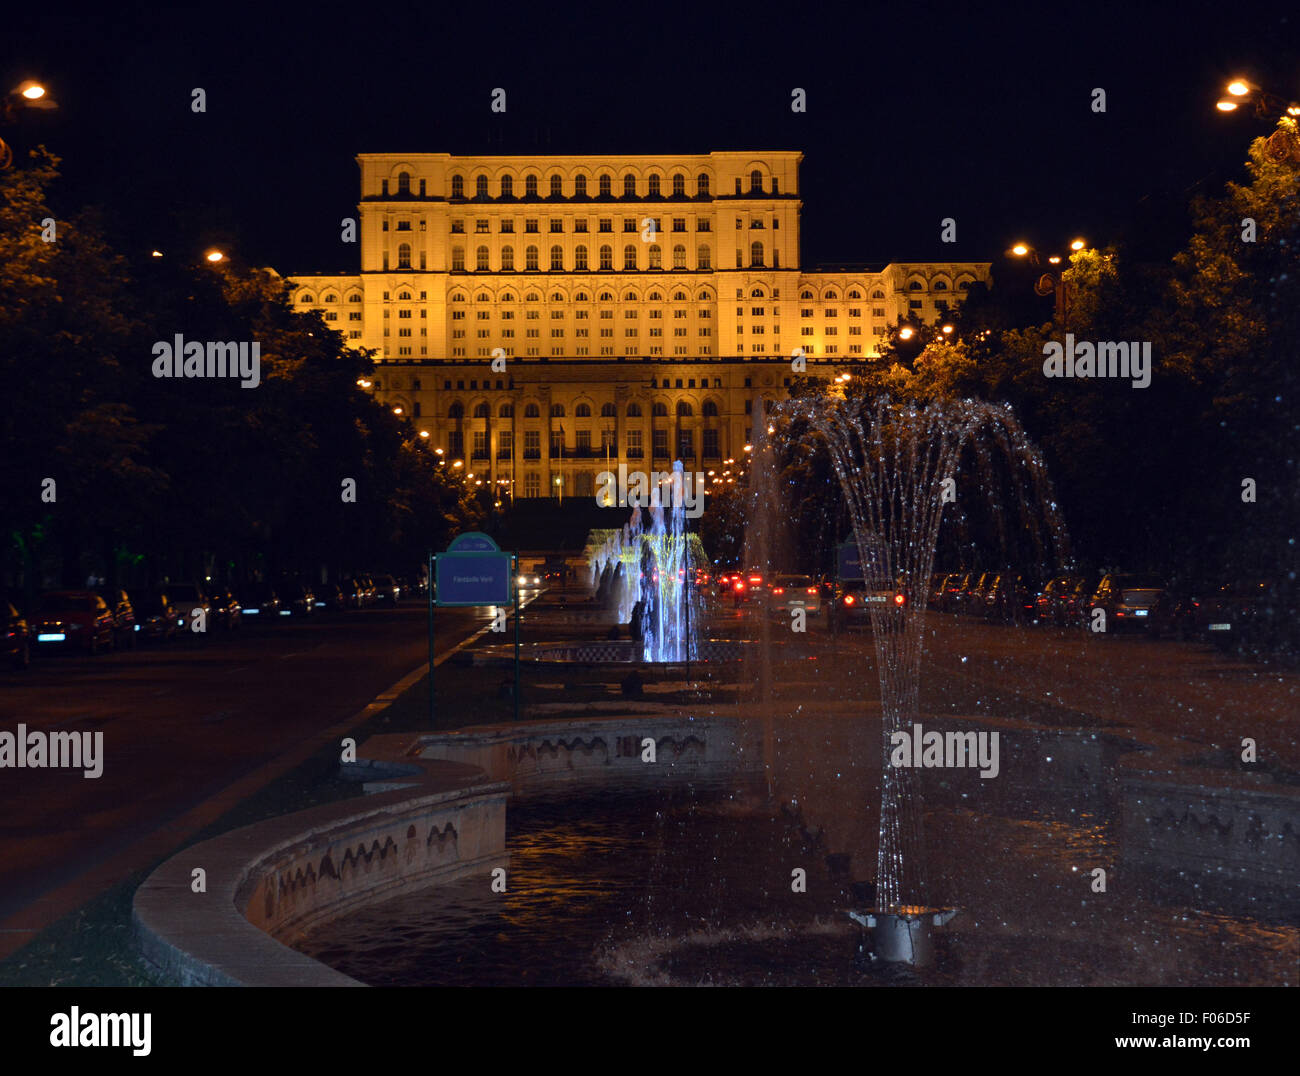 View of Romanian parliament from fountains in Unirii Boulevard, Bucharest, Romania Stock Photo